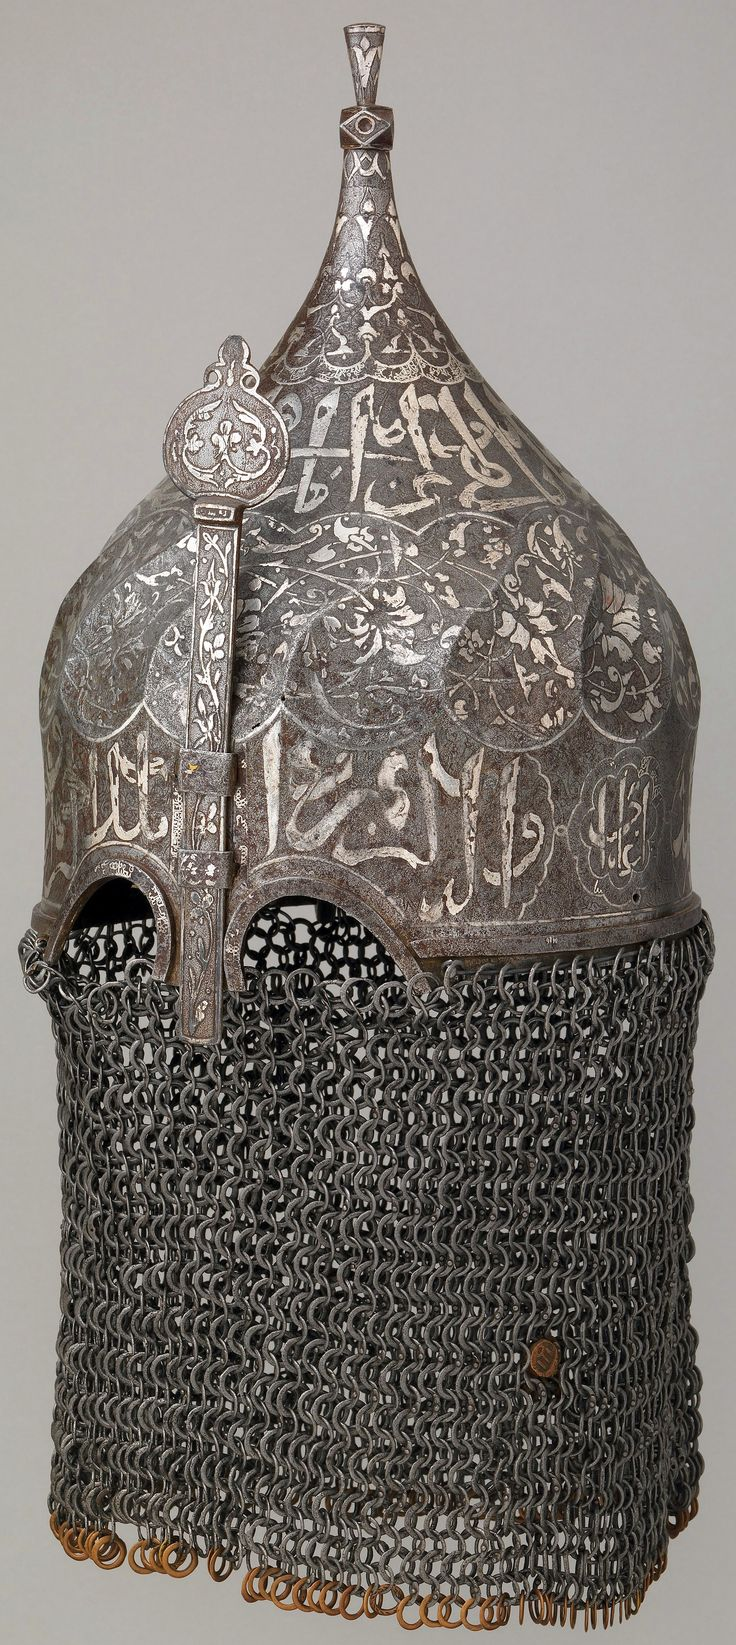 60 best images about Persia / Turkey on Pinterest Persian Immortals Mask